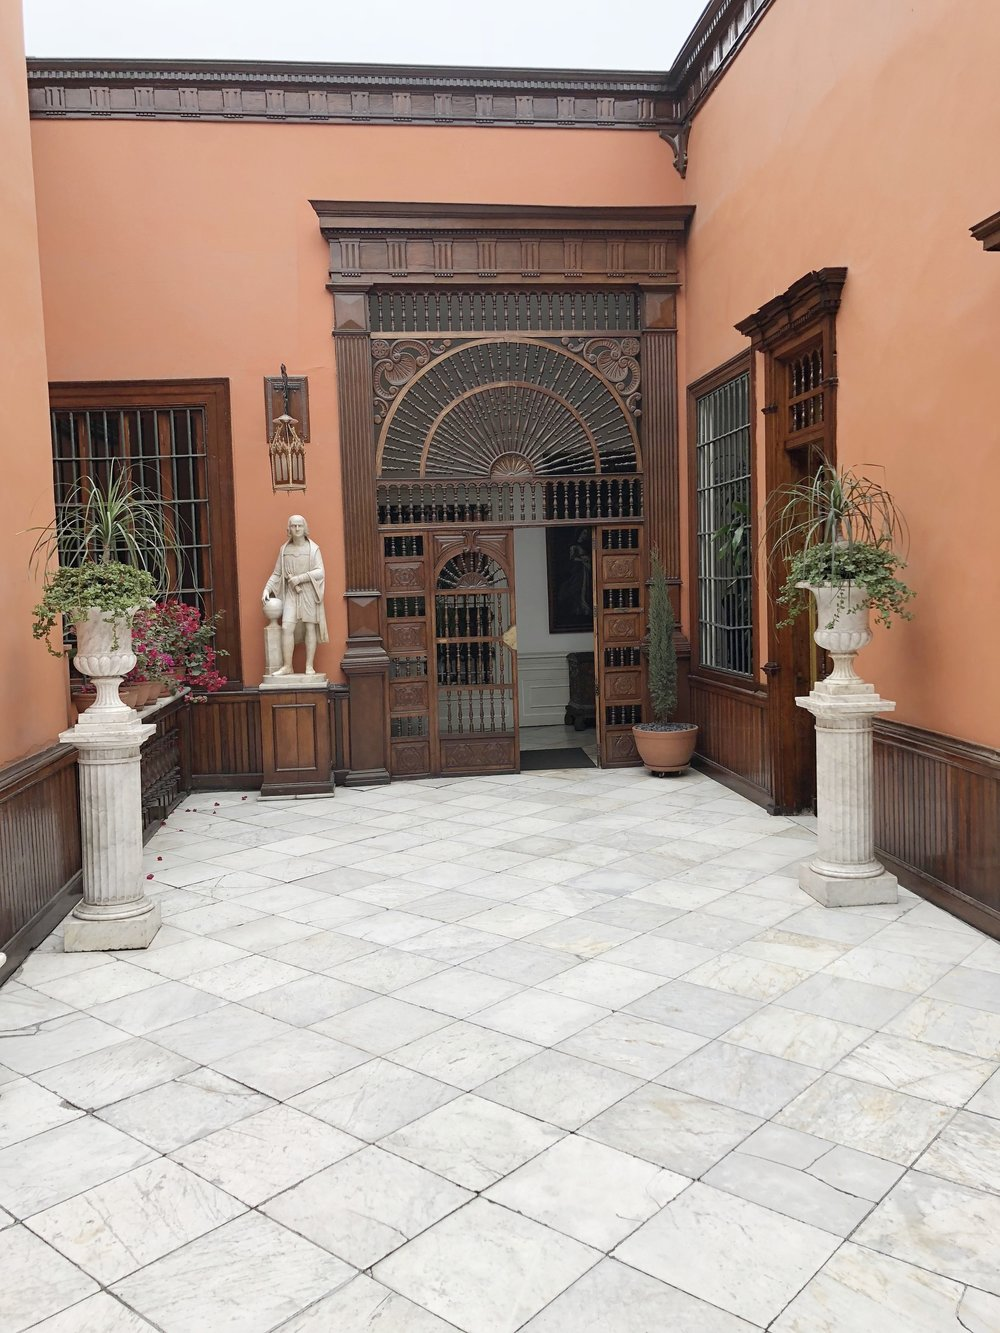 Interior Patio of Casa de Aliaga